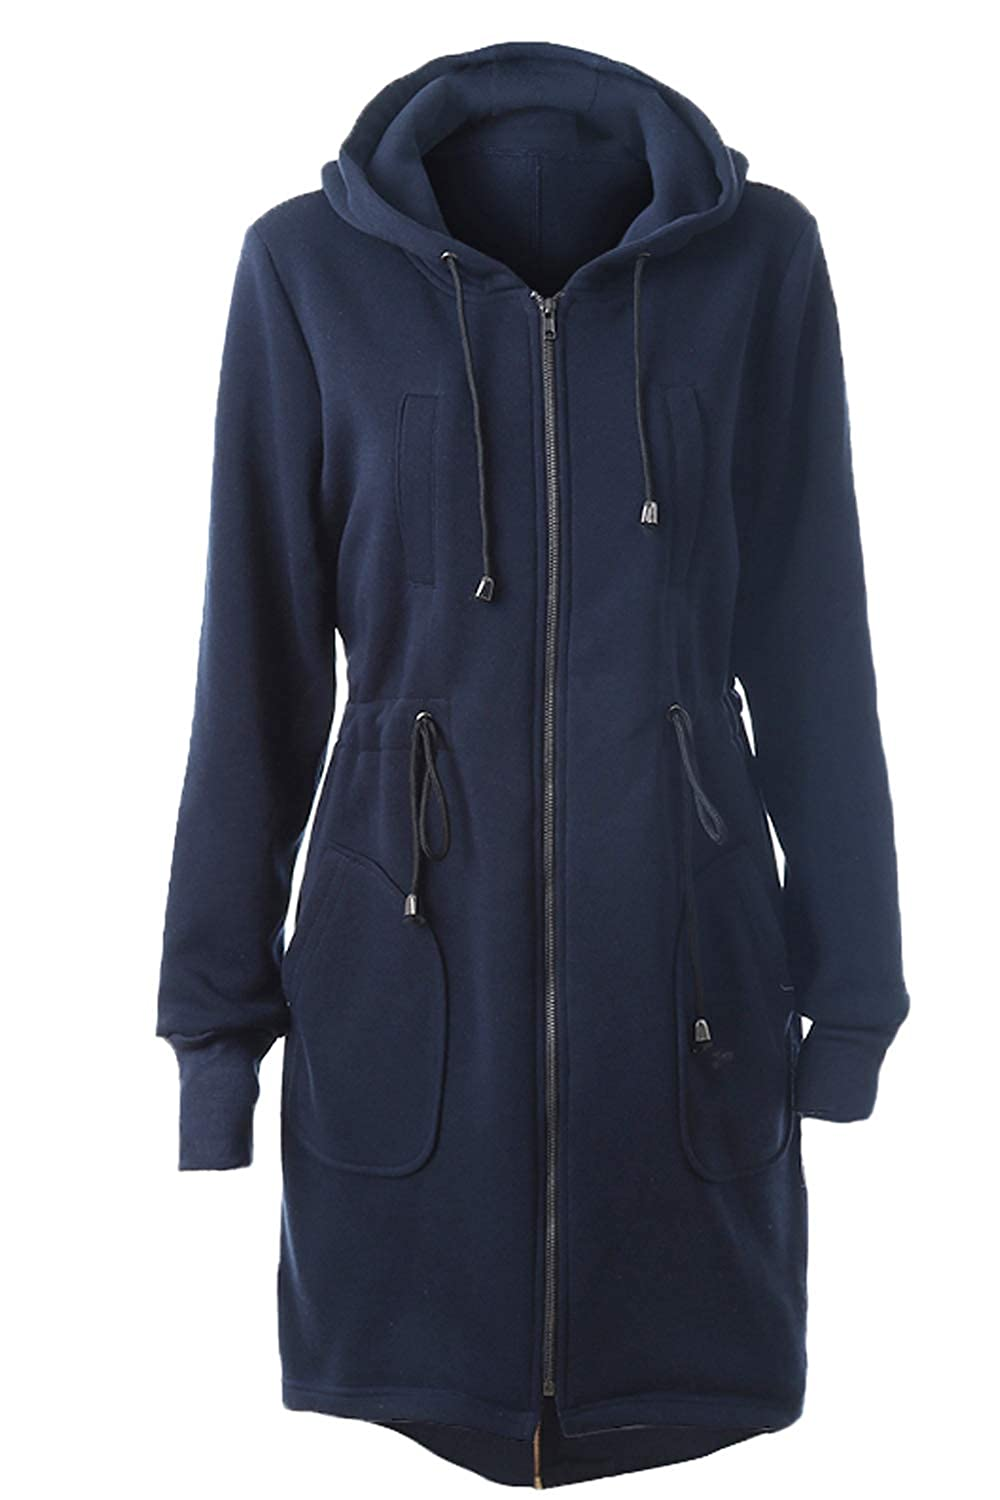 Dazosue Womens Trenchcoat Hooded Drawstring Waist Zip Up Outerwear